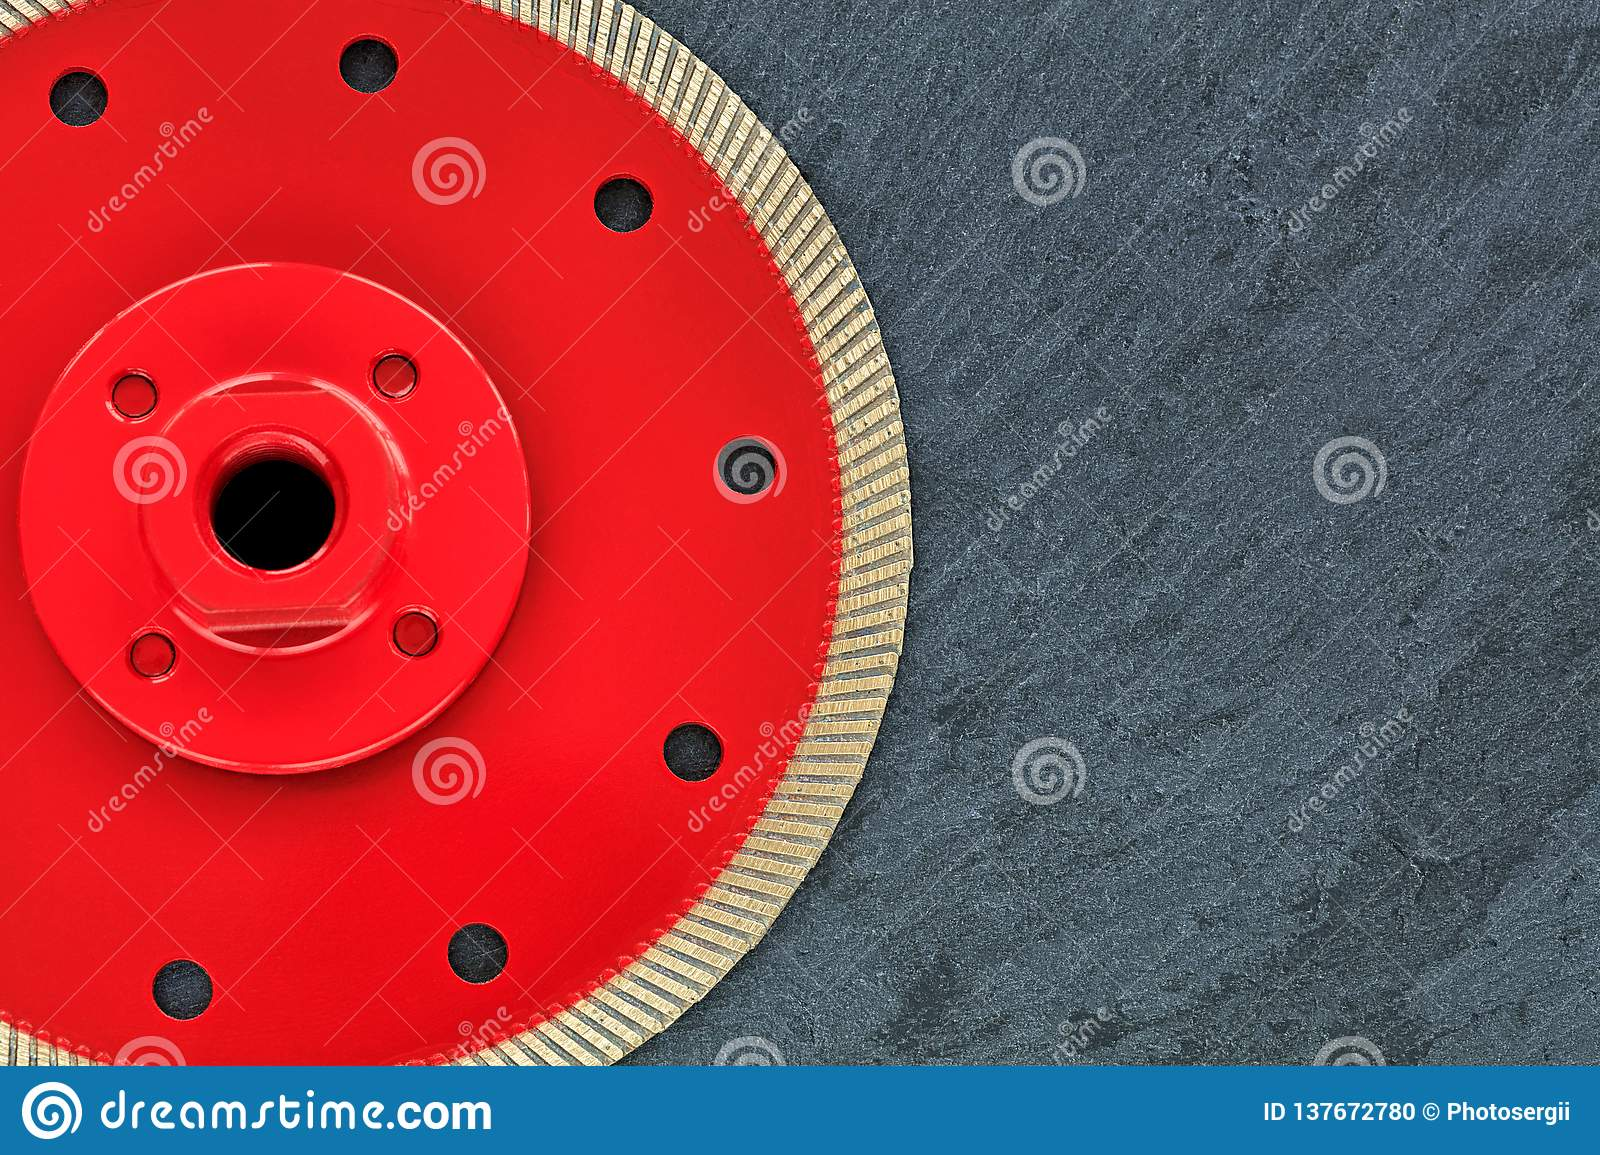 A part of a diamond cutting wheel is red with a threaded nut on a background of gray granite